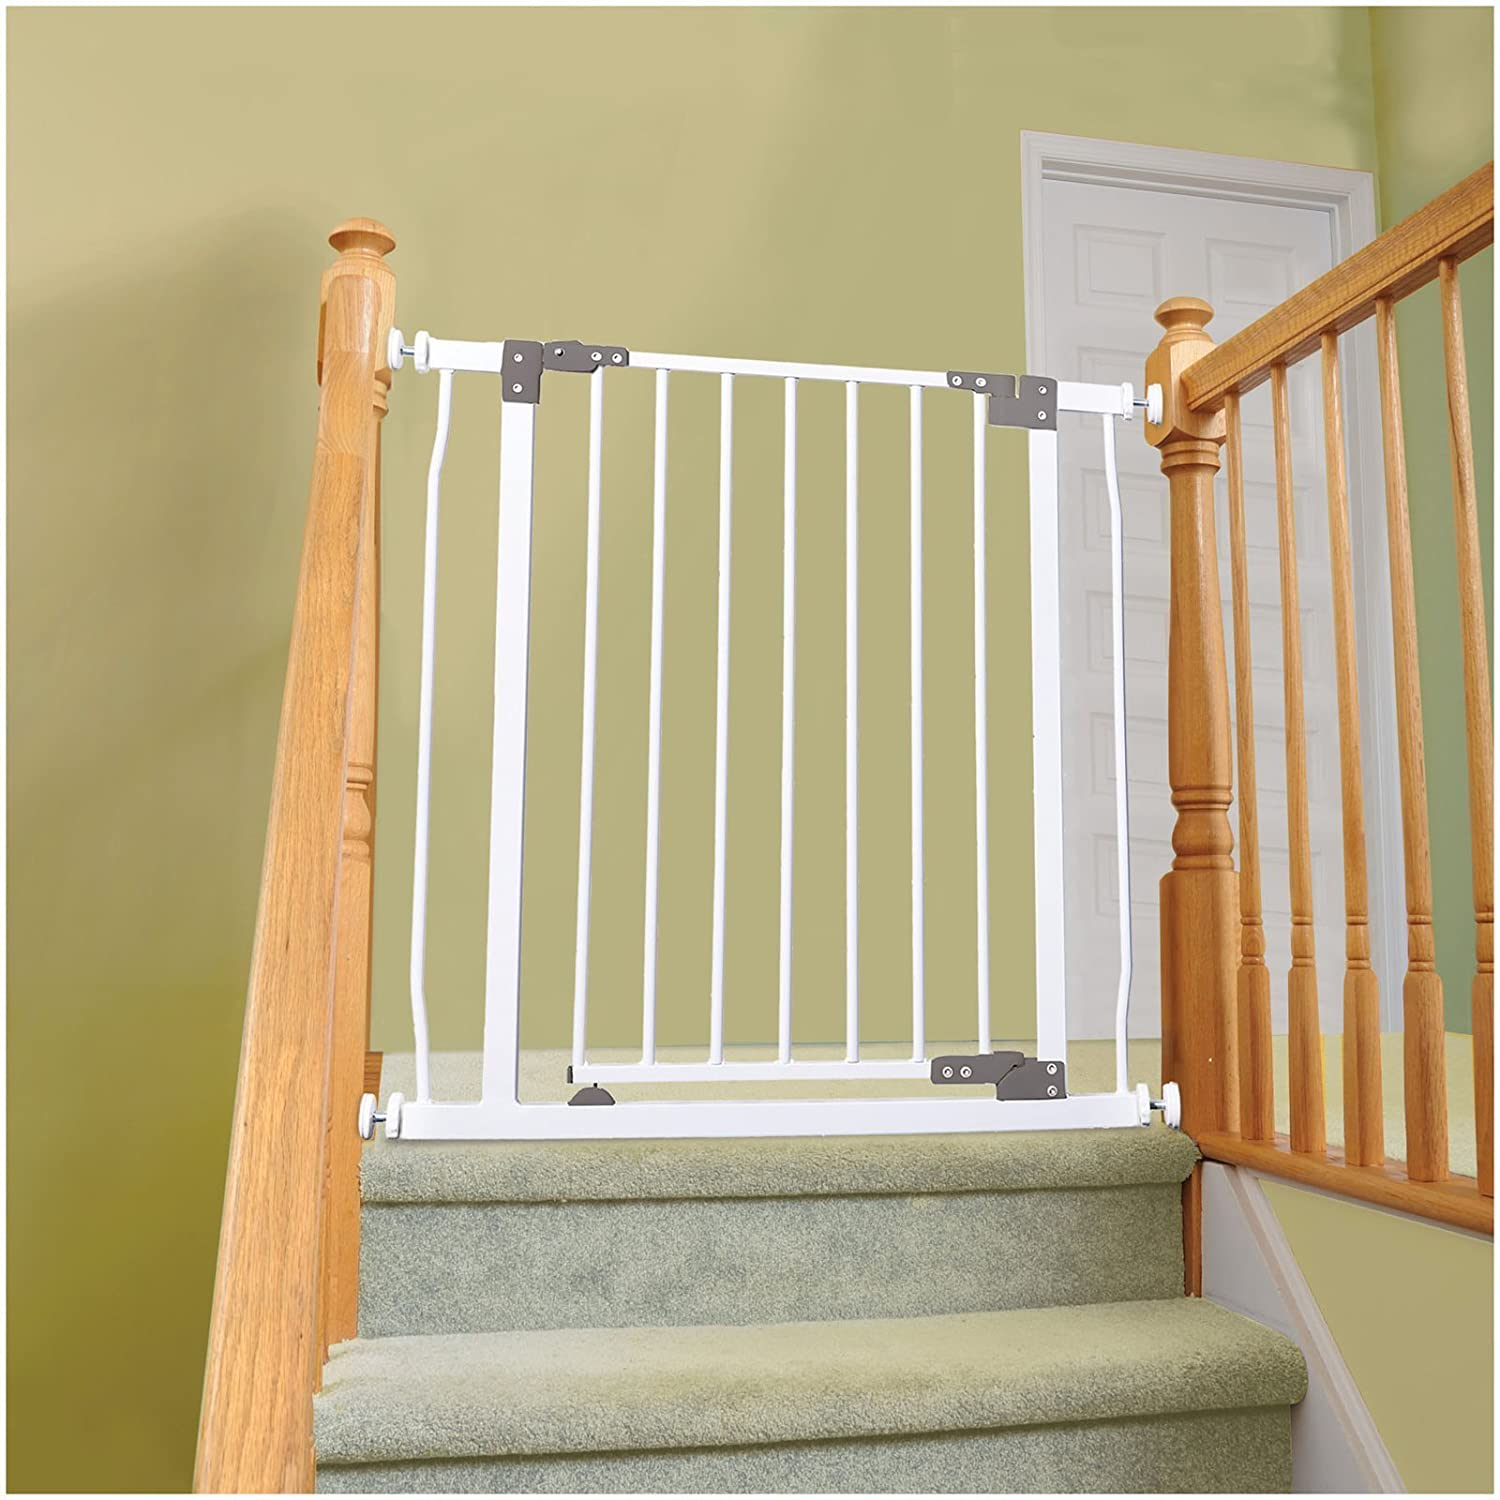 Amazon.com : Dreambaby Liberty Security Gate W/ Stay Open Feature  White :  Indoor Safety Gates : Baby